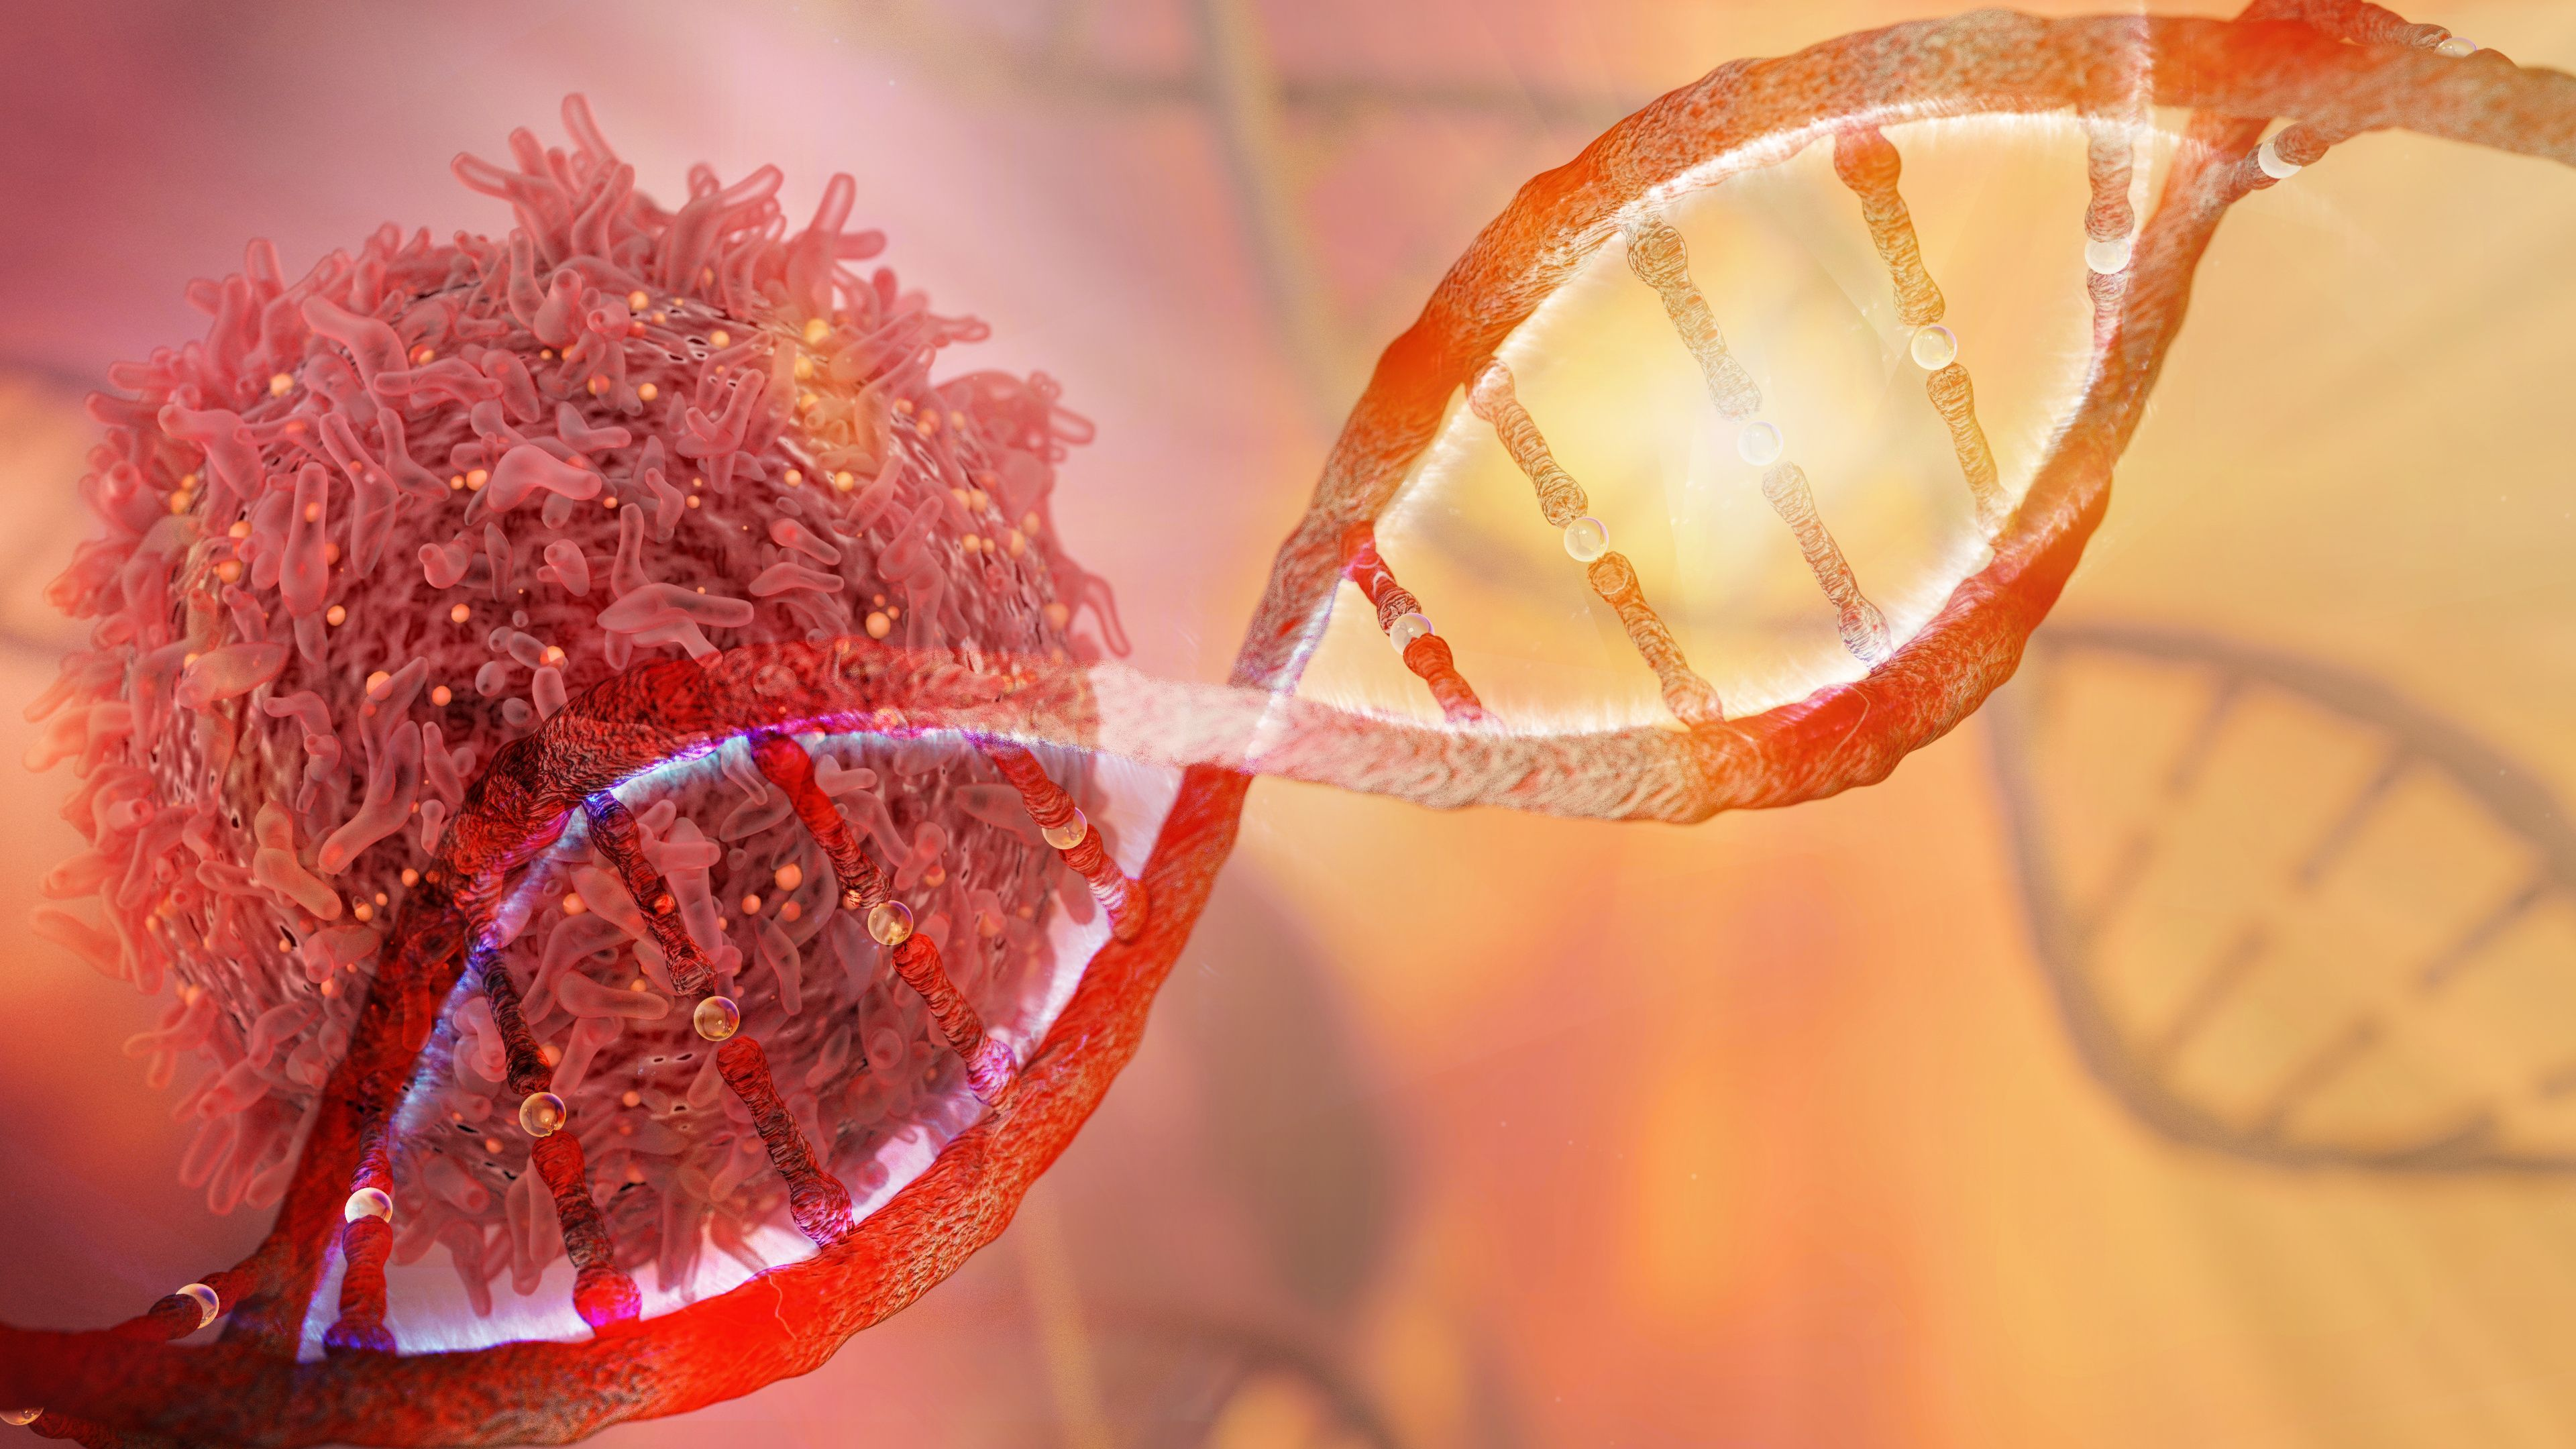 Targeting treatment is the key to success in oncology